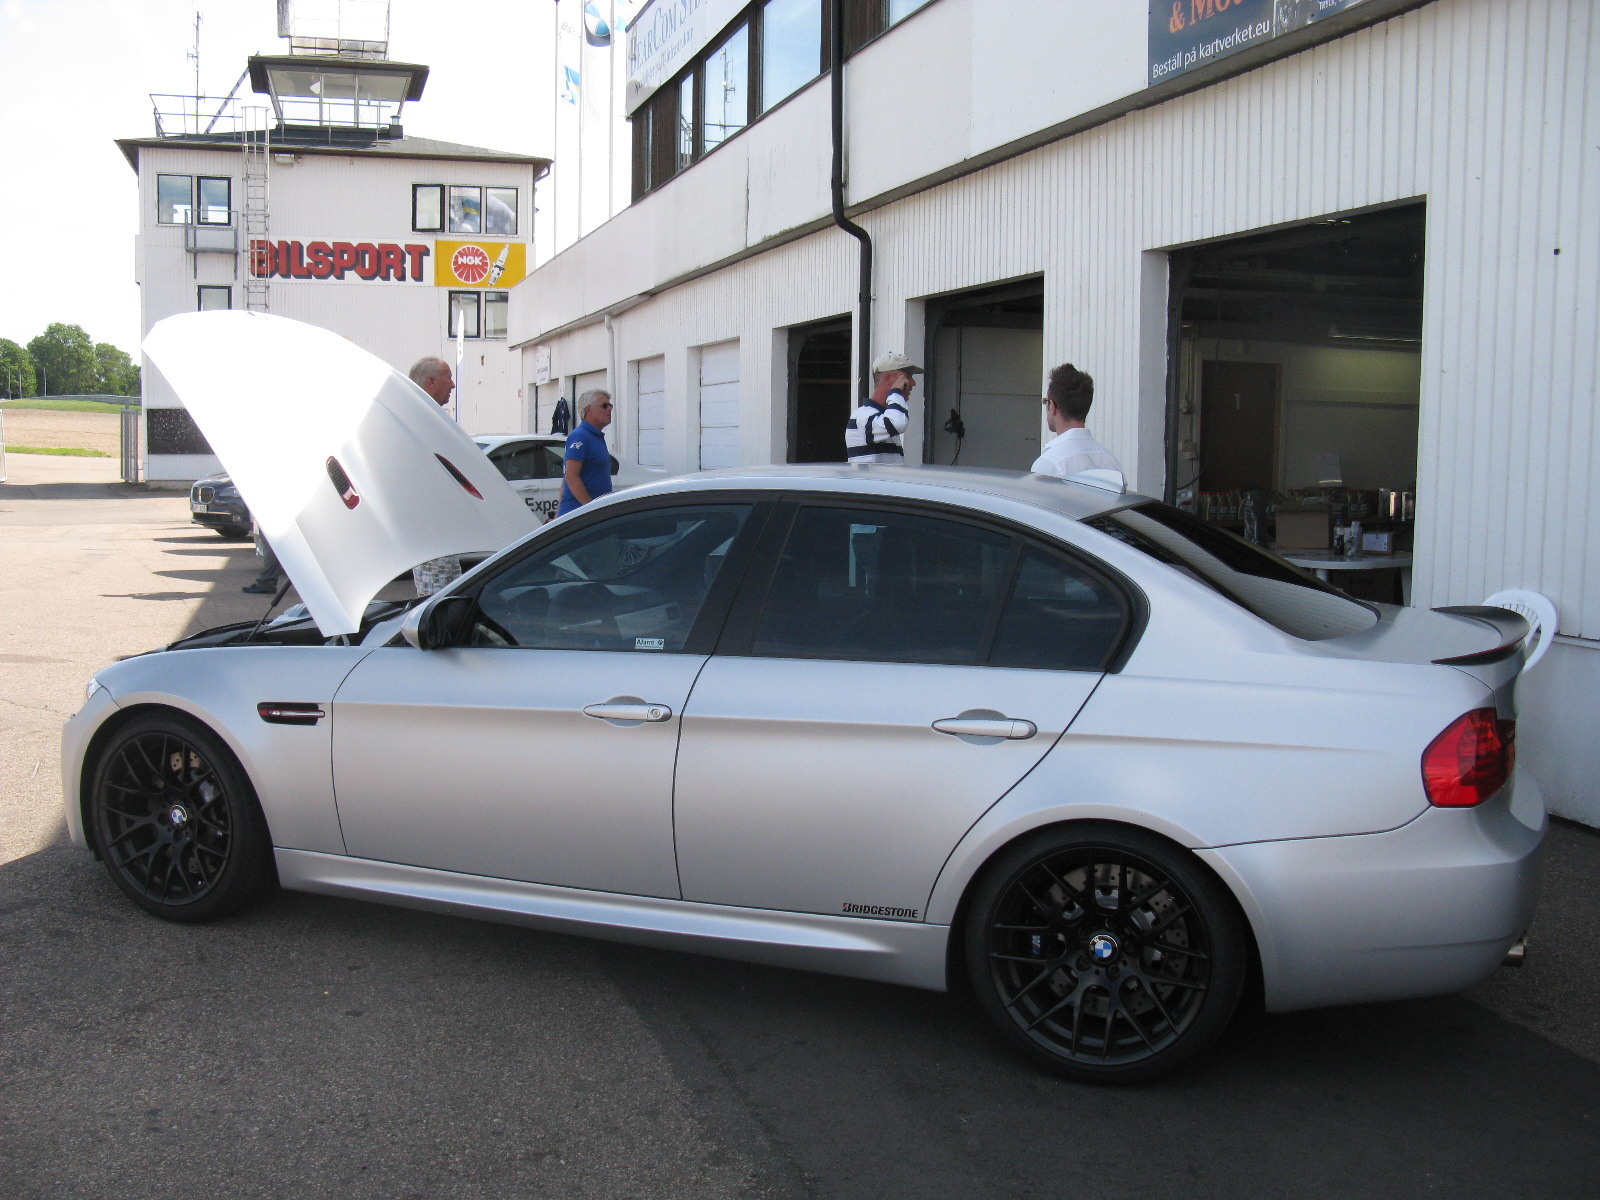 File:BMW M3 CRT E90 (7720128266).jpg - Wikimedia Commons